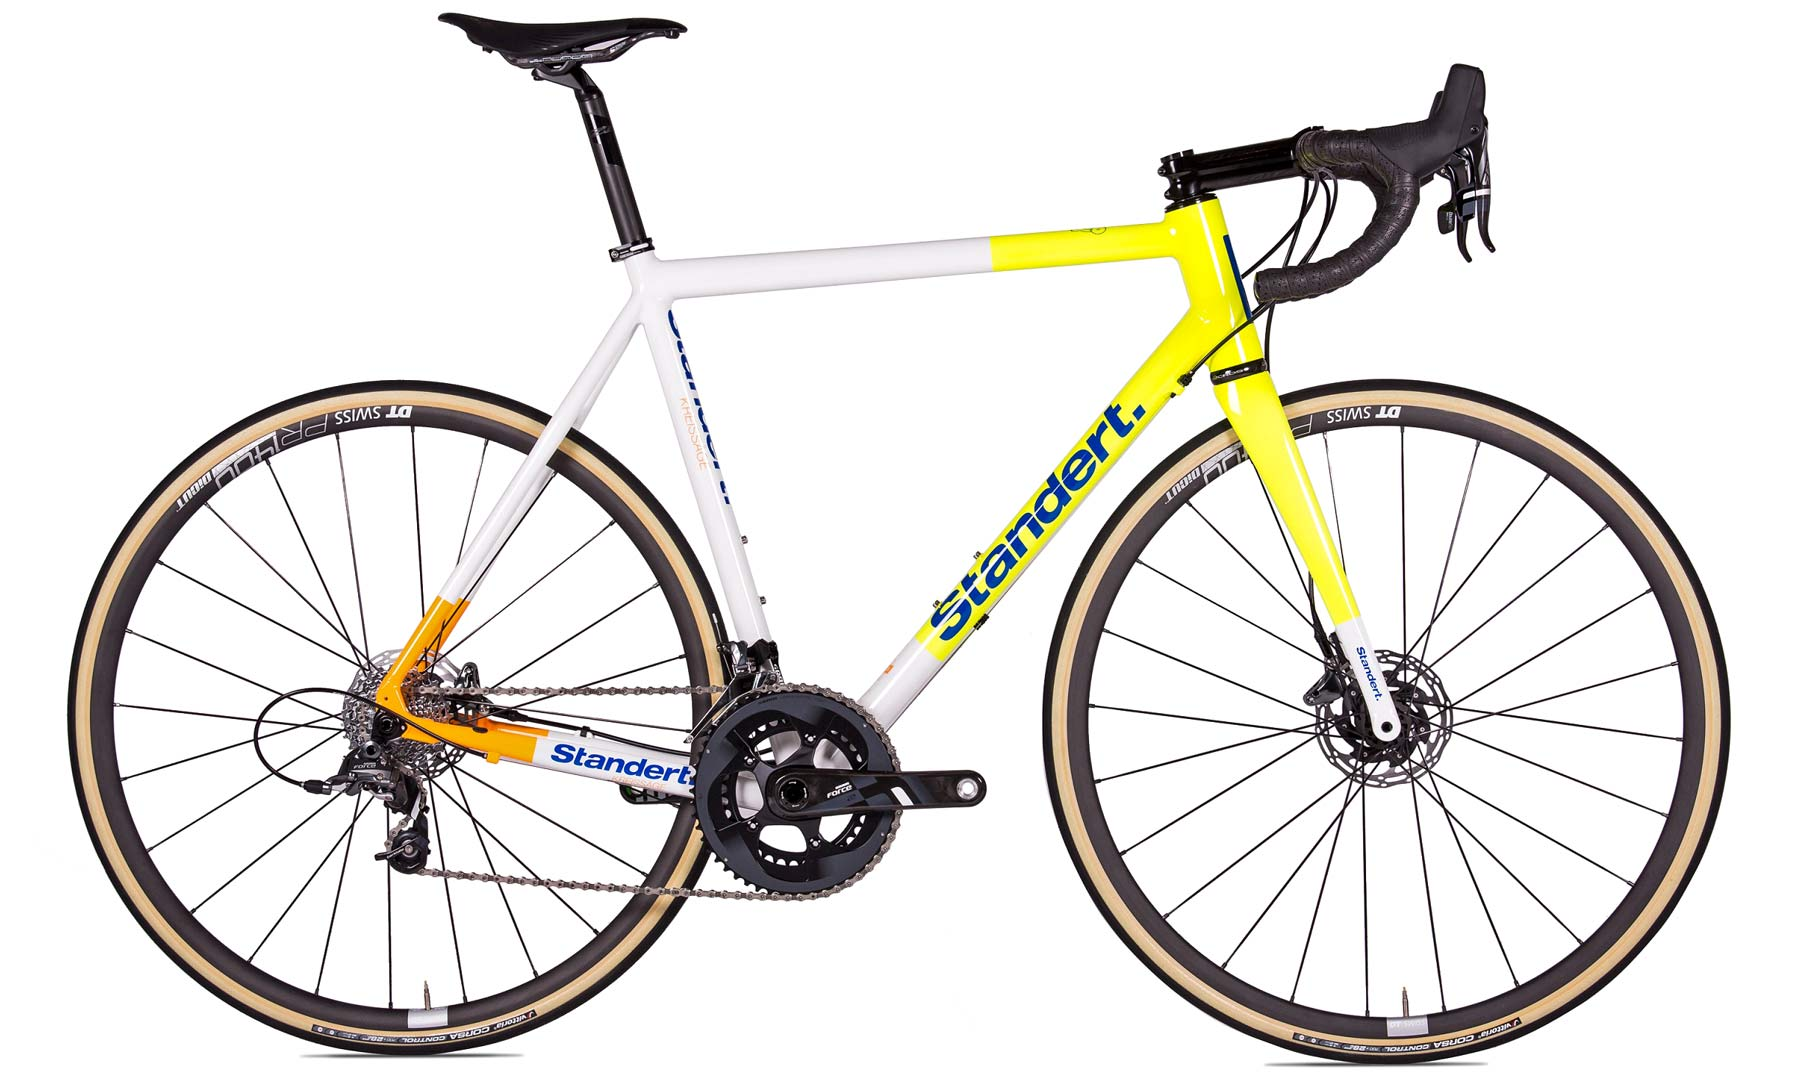 Standert Kreissäge Disc, Kreissaege Disc, Kreissage Disc, scandium aluminum alloy disc brake road race bike